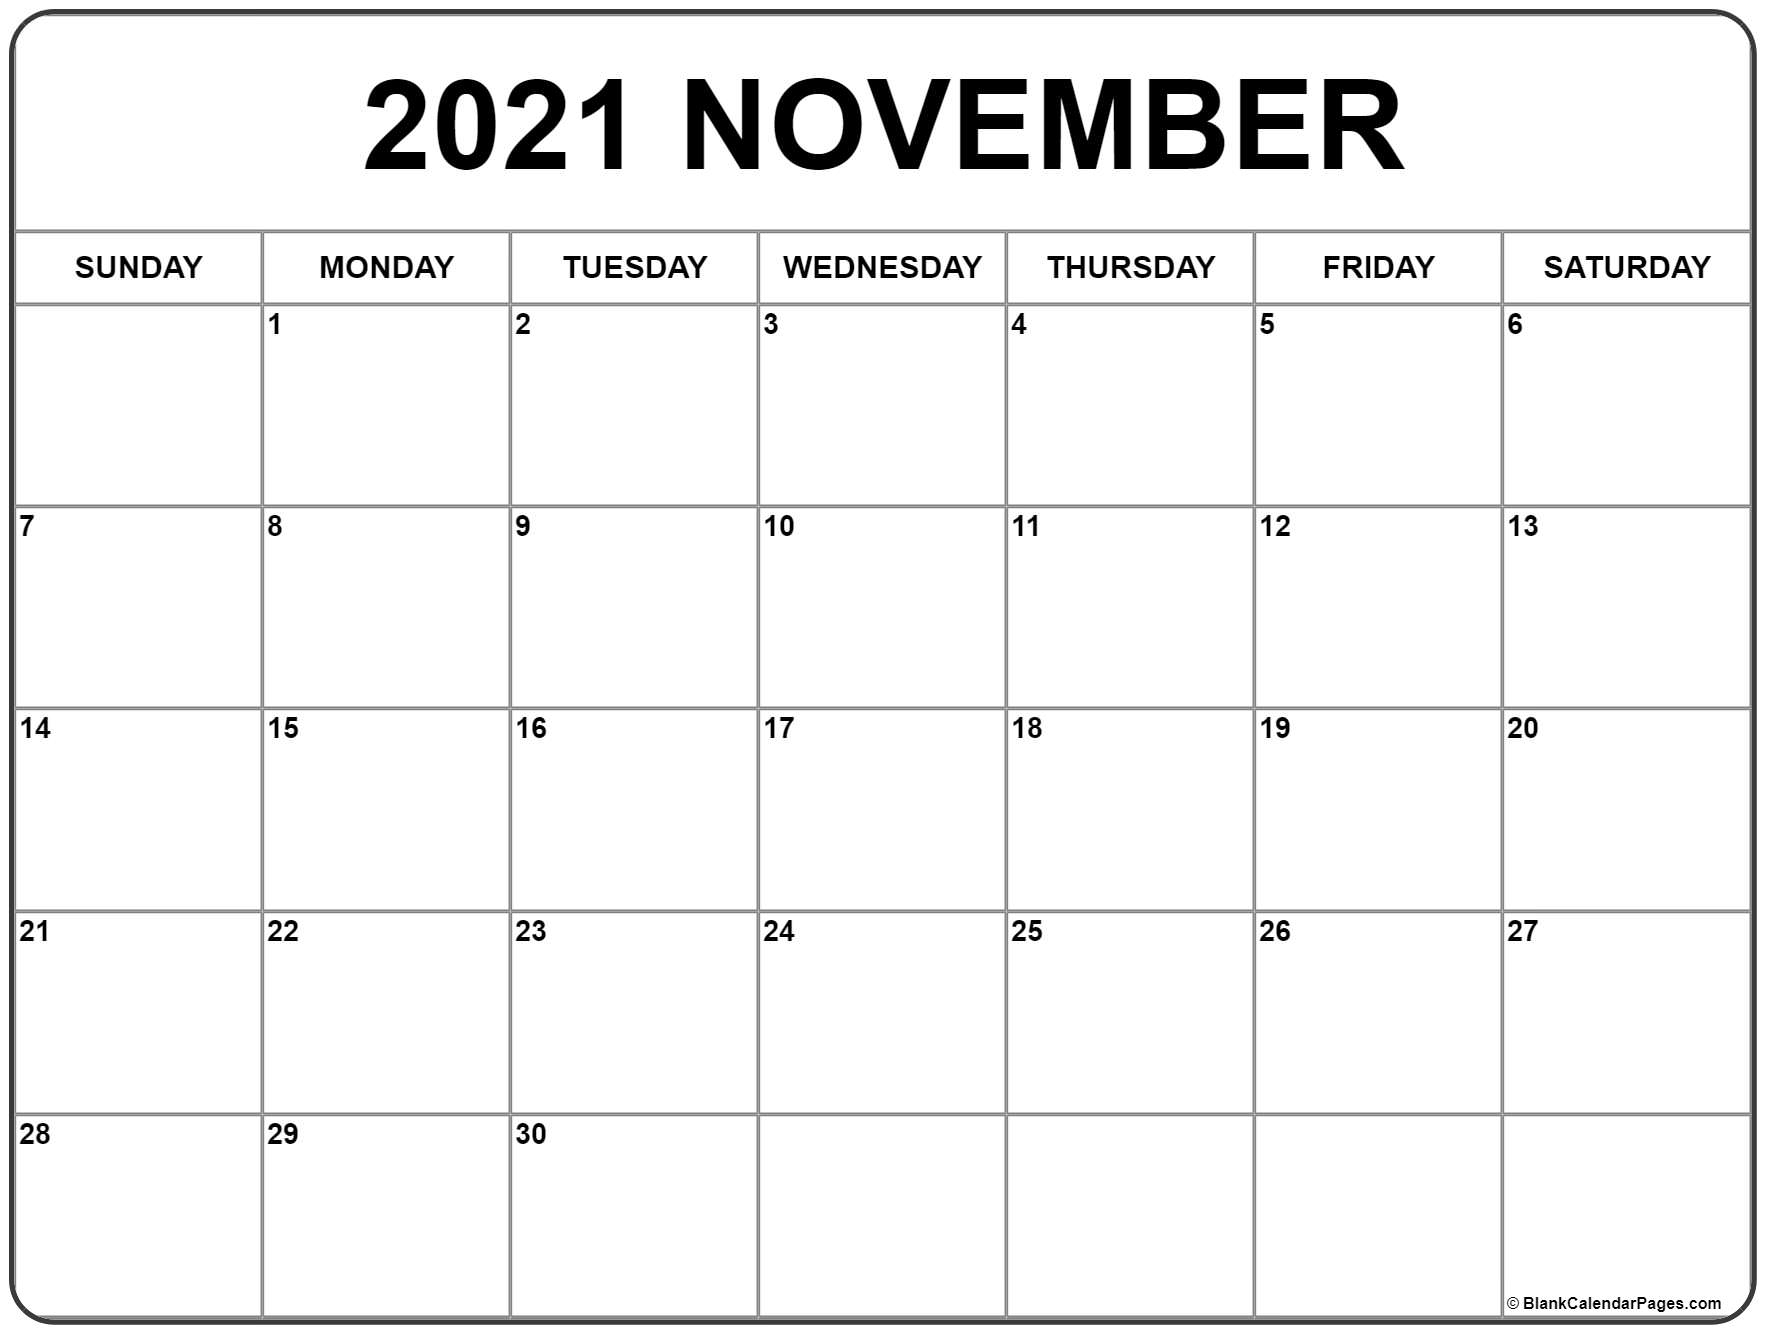 Catch October 2021 Calendar Printable Free